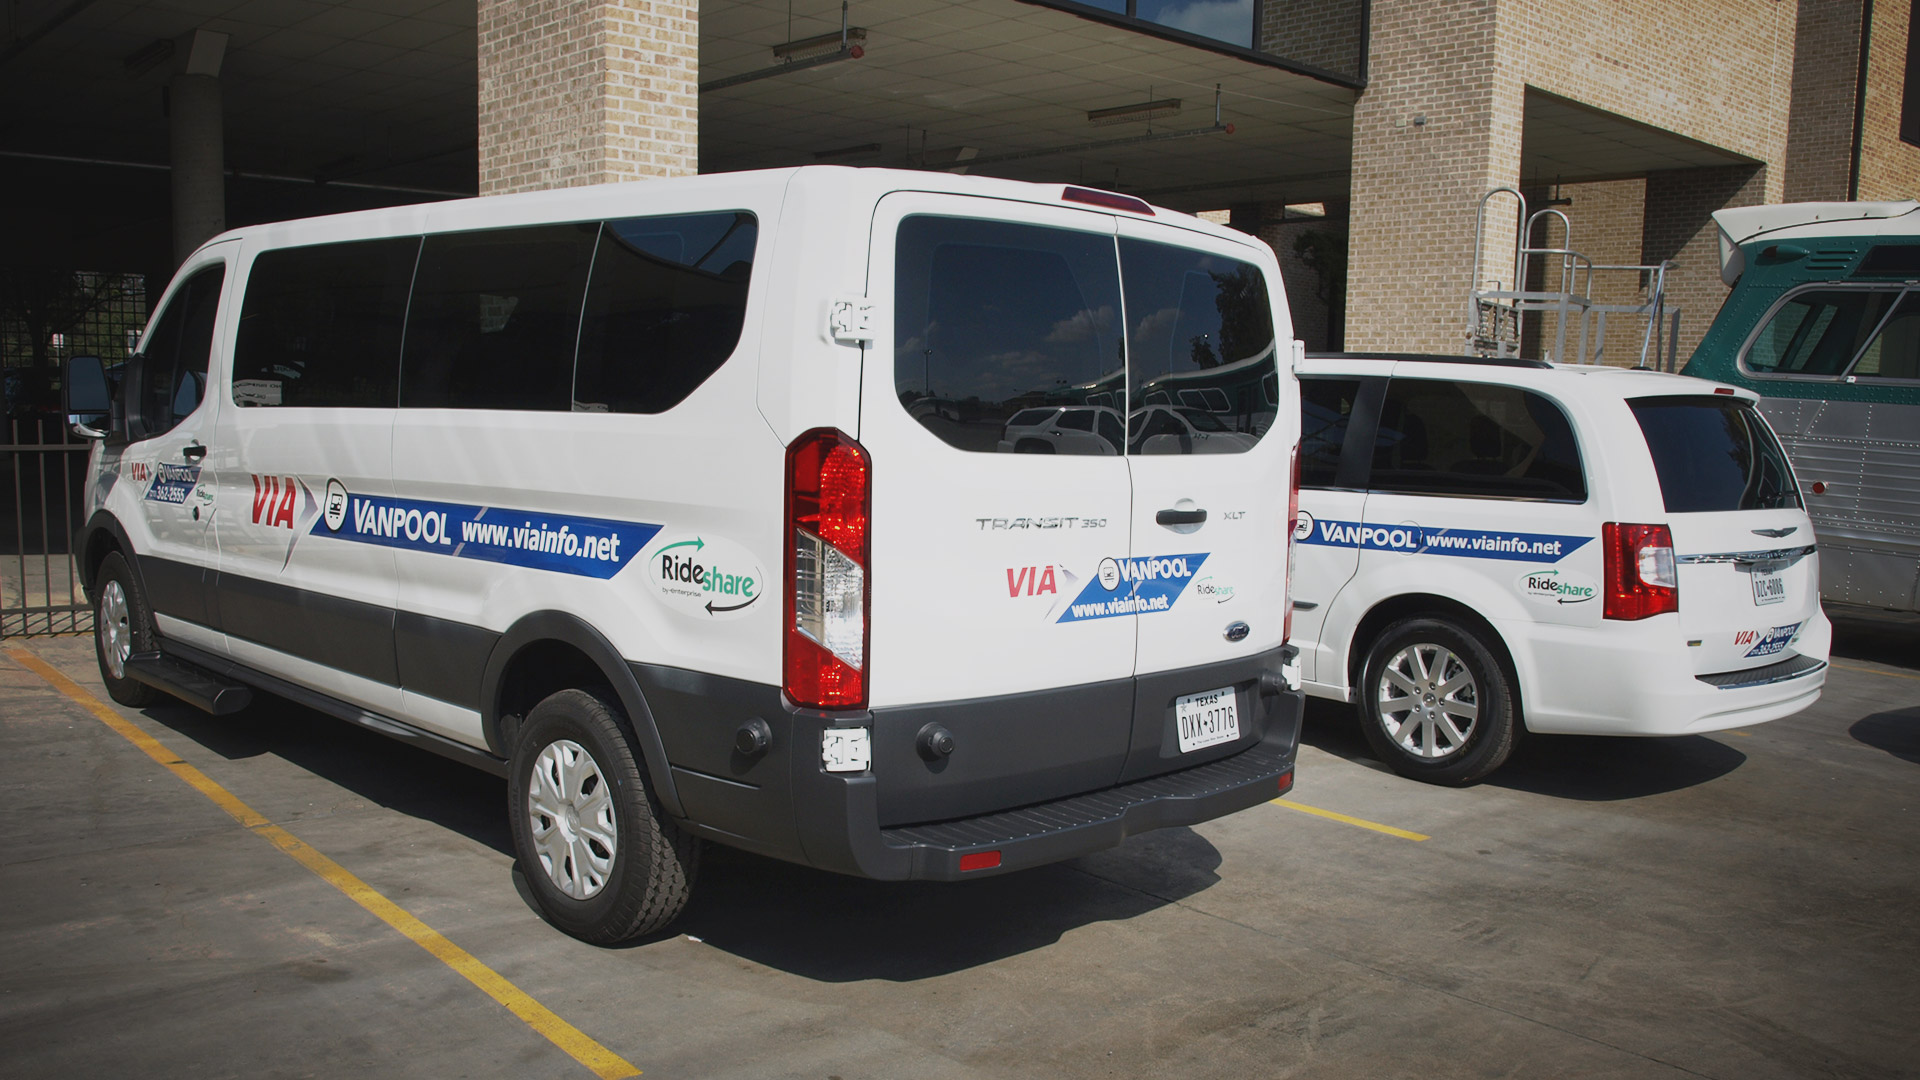 image of VIA vanpool vans